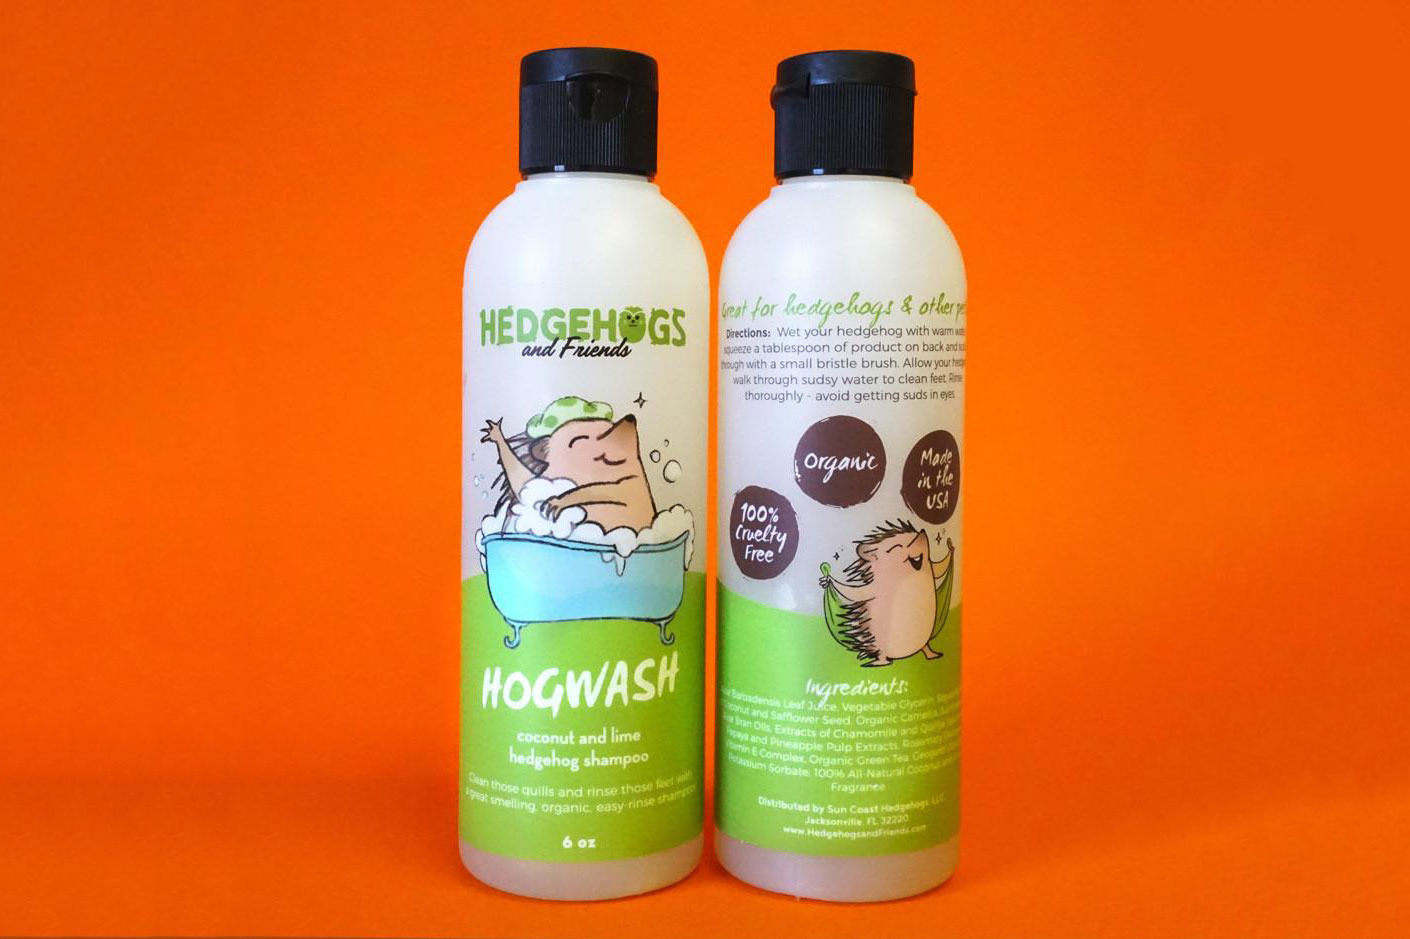 Hogwash Coconut Lime Shampoo